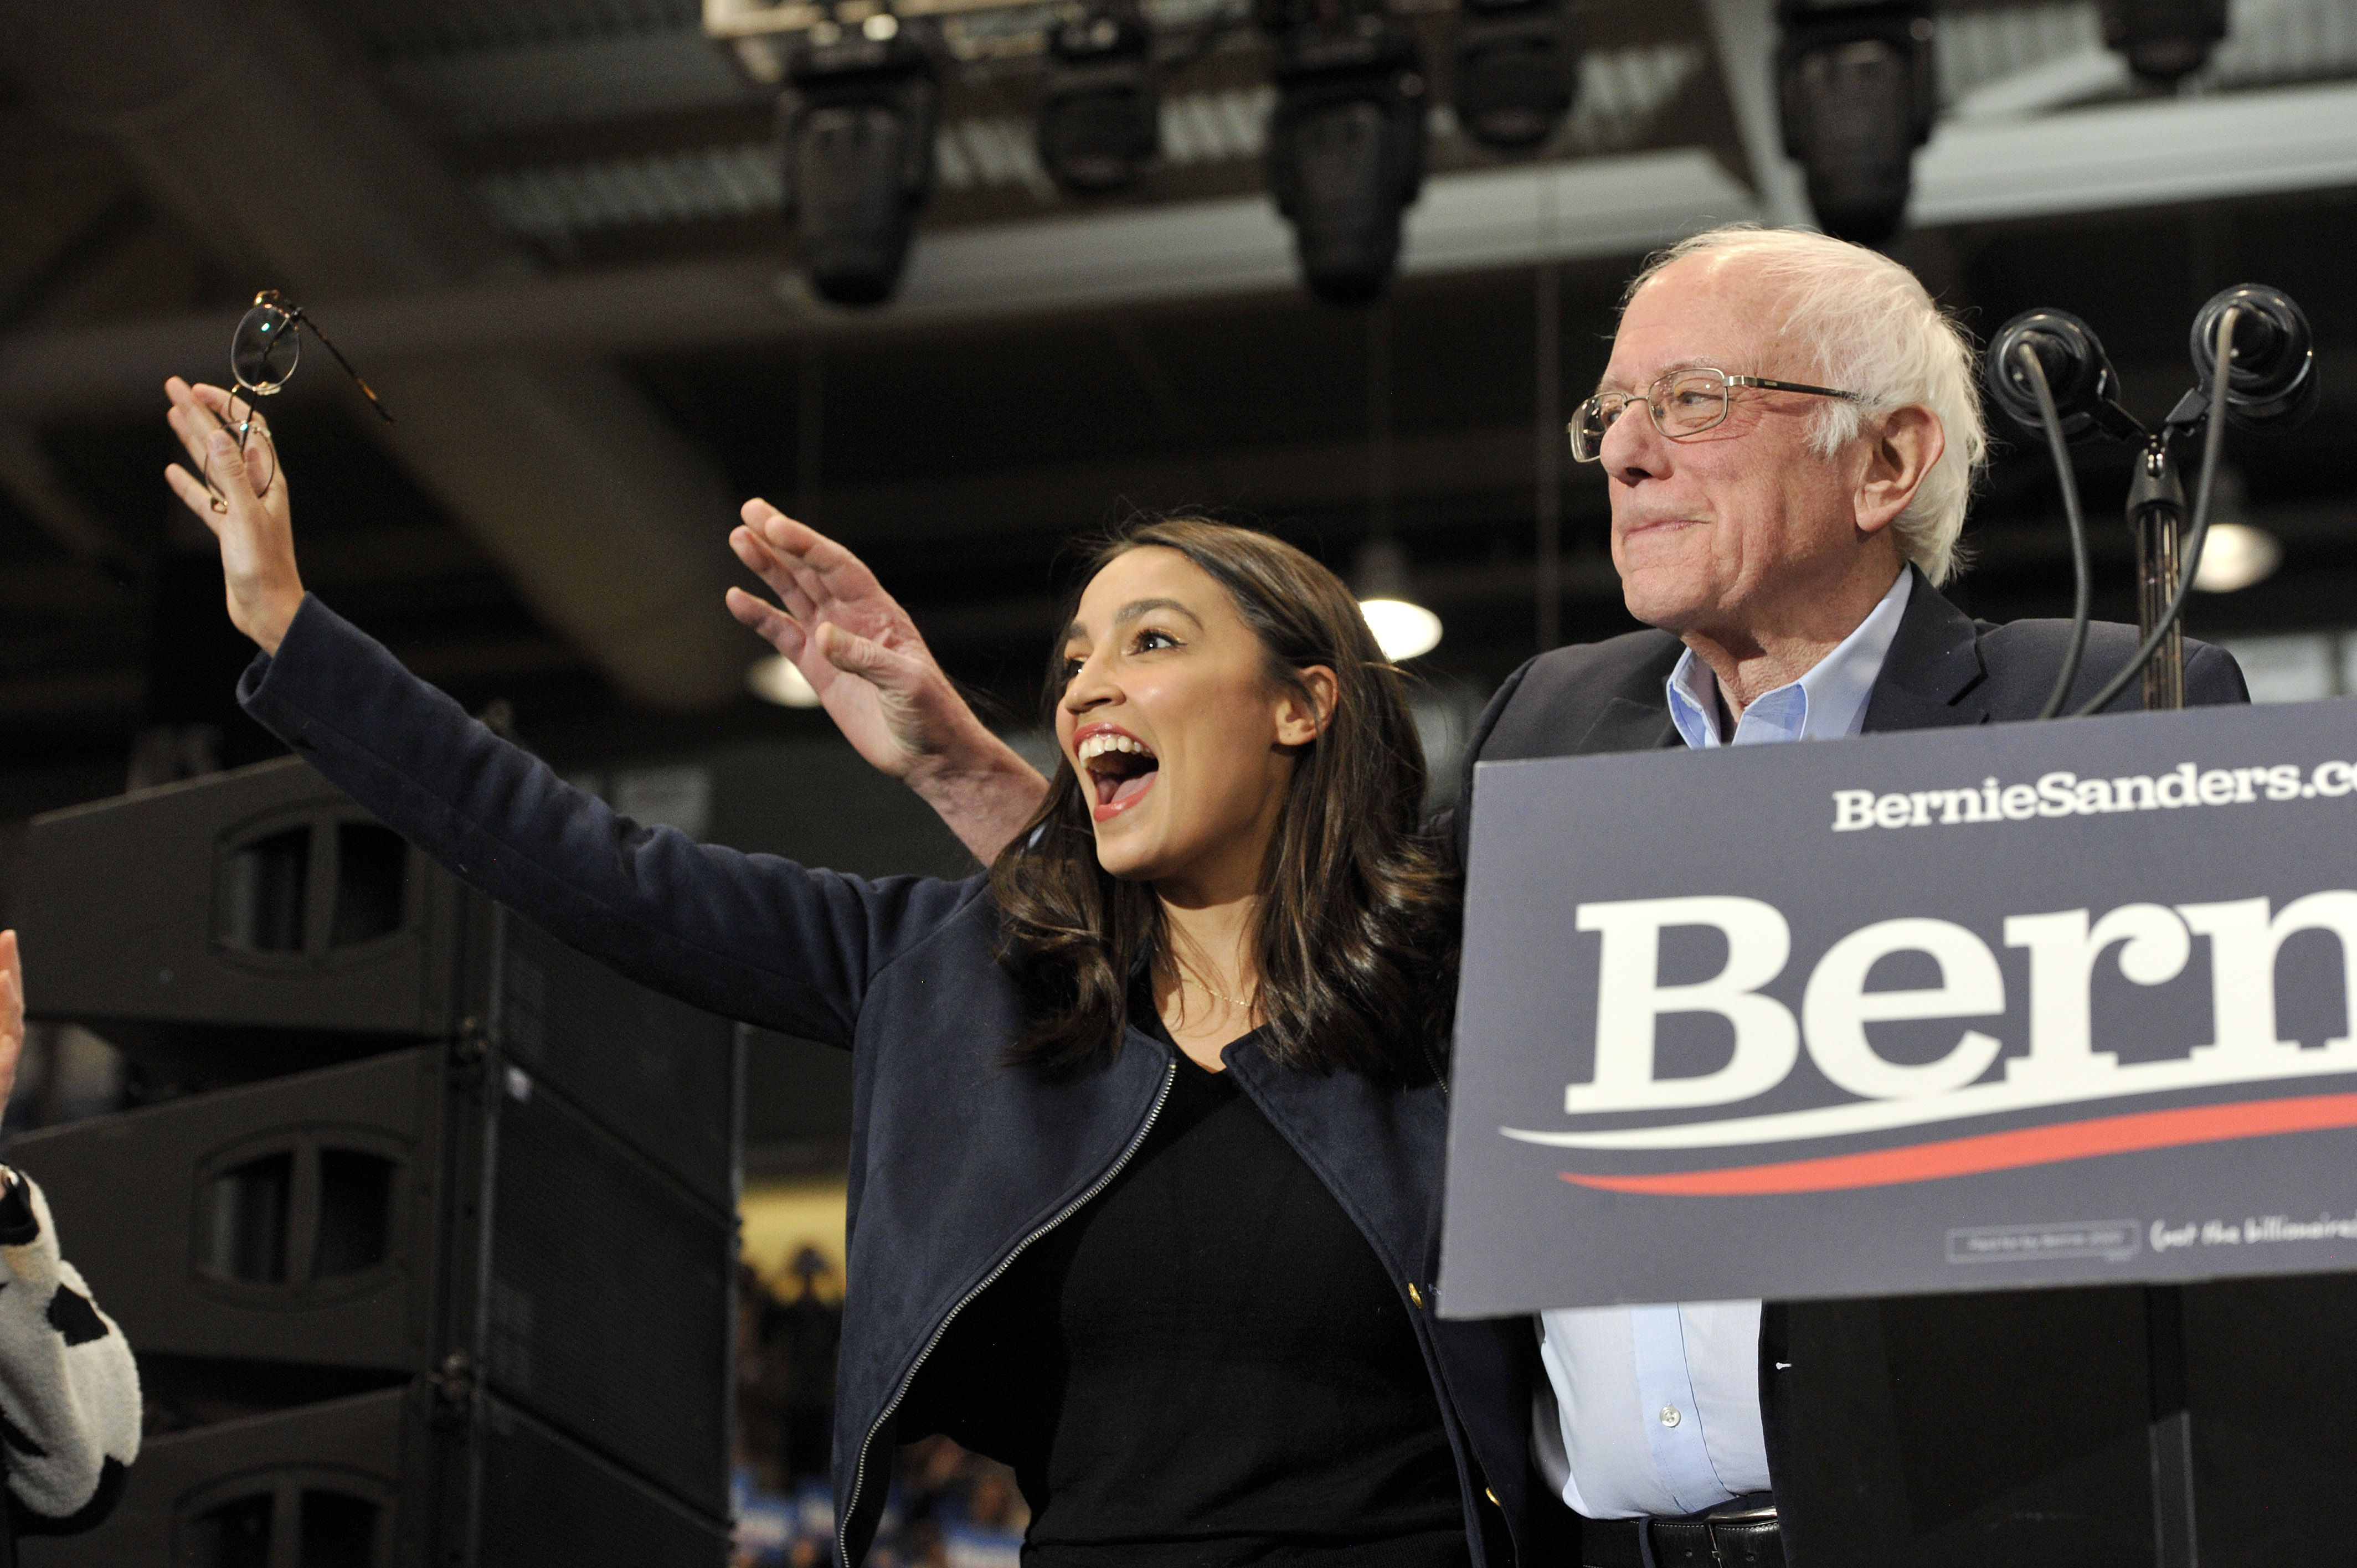 AOC concedes Sanders may have to compromise on Medicare for All - Axios